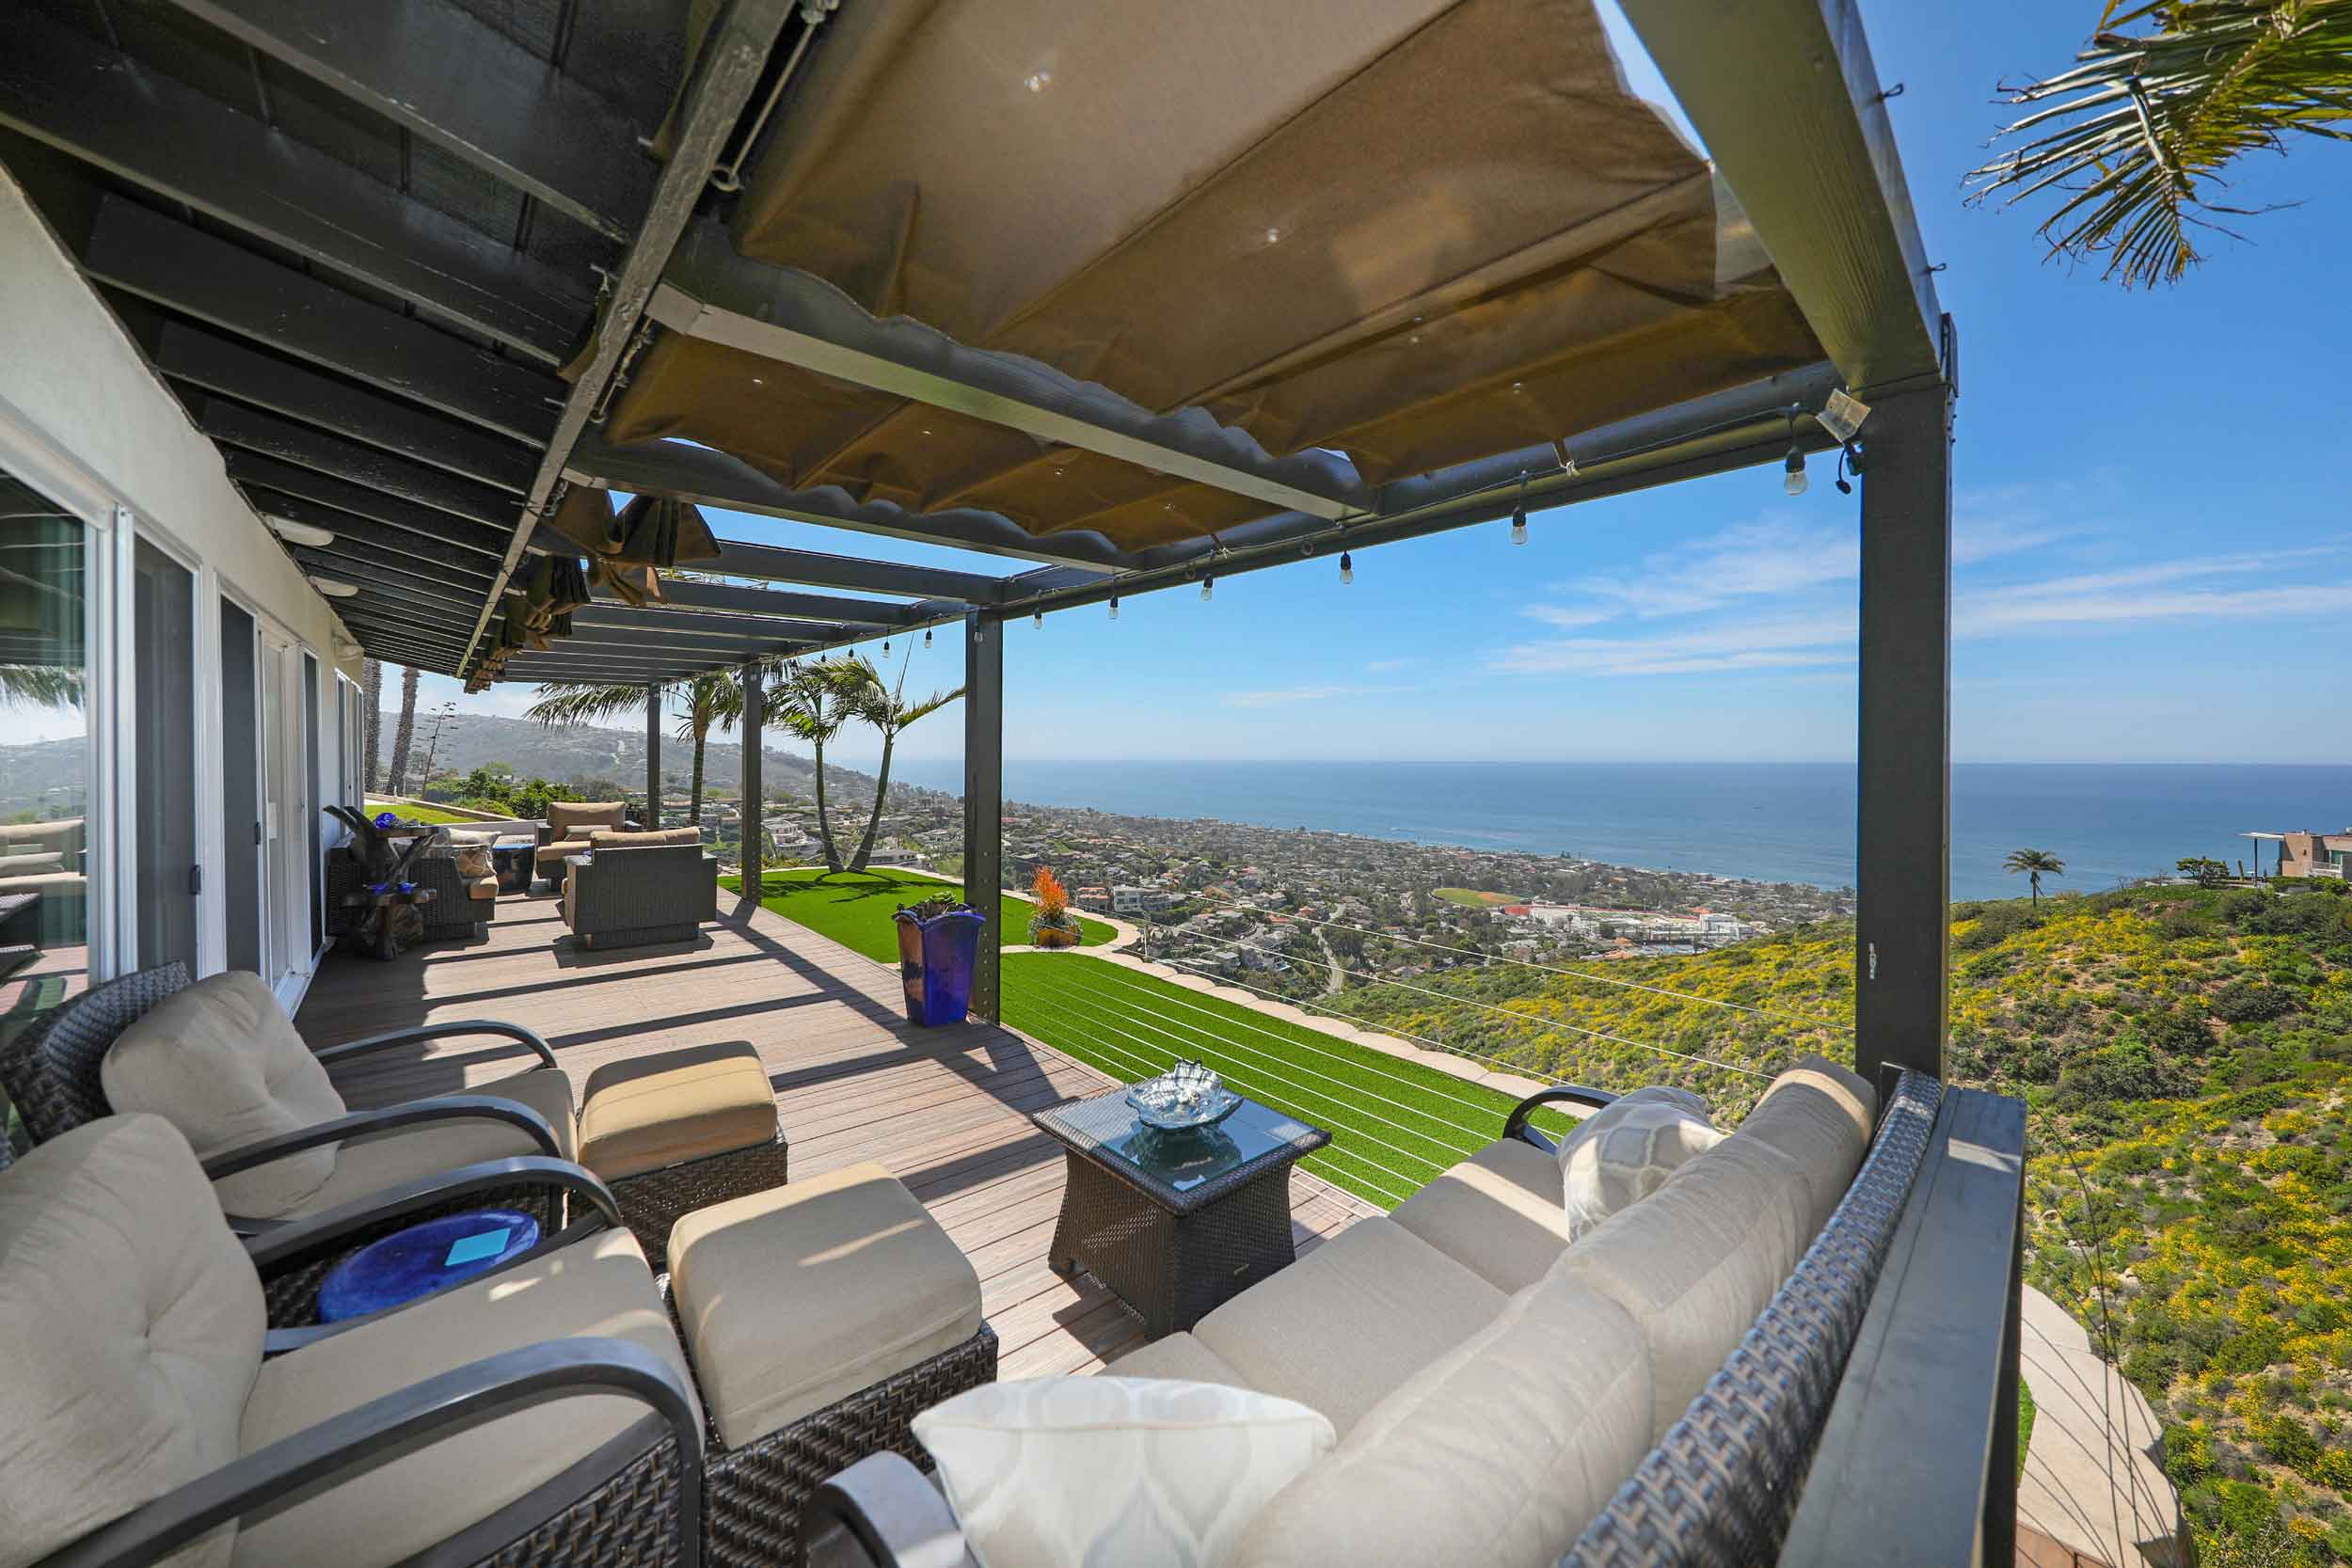 This Laguna Beach, California, home conserves water with synthetic lawns and enjoys an adjacent vegetable and herb garden.